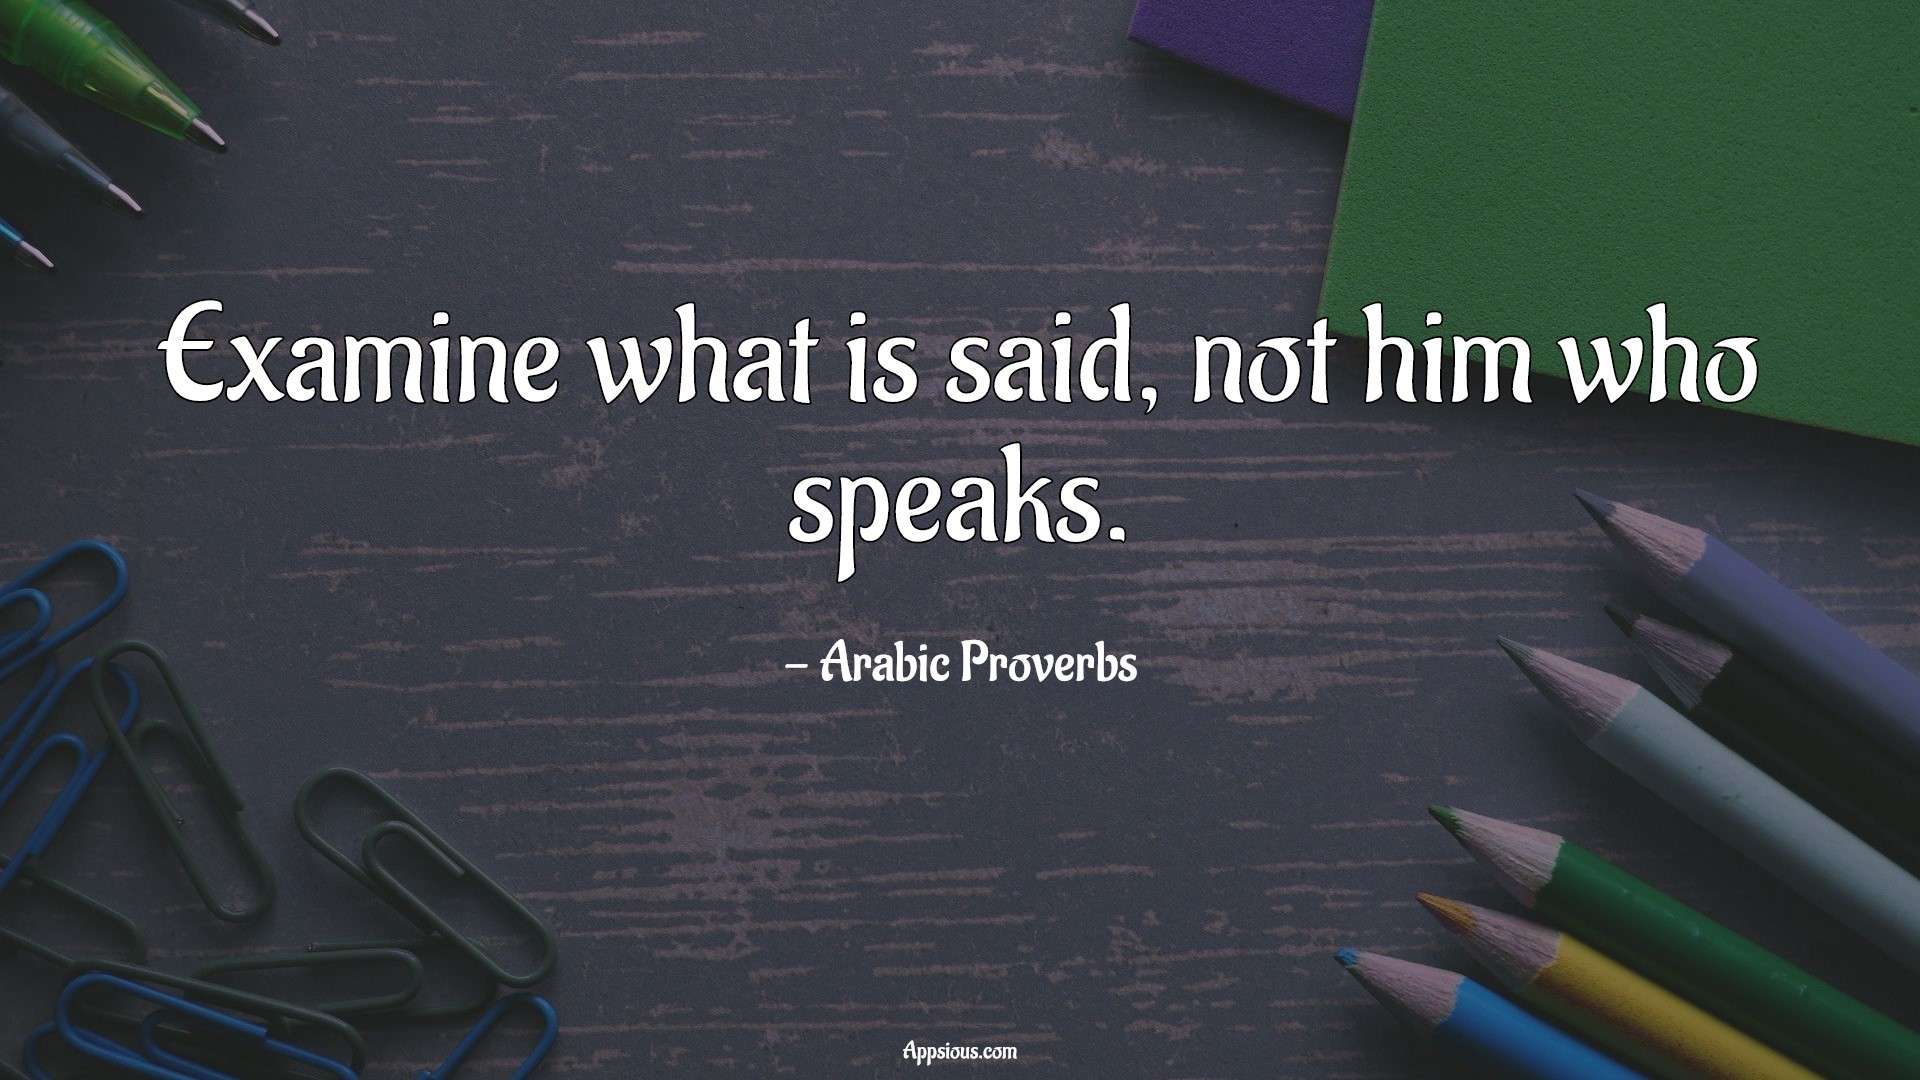 Examine what is said, not him who speaks.